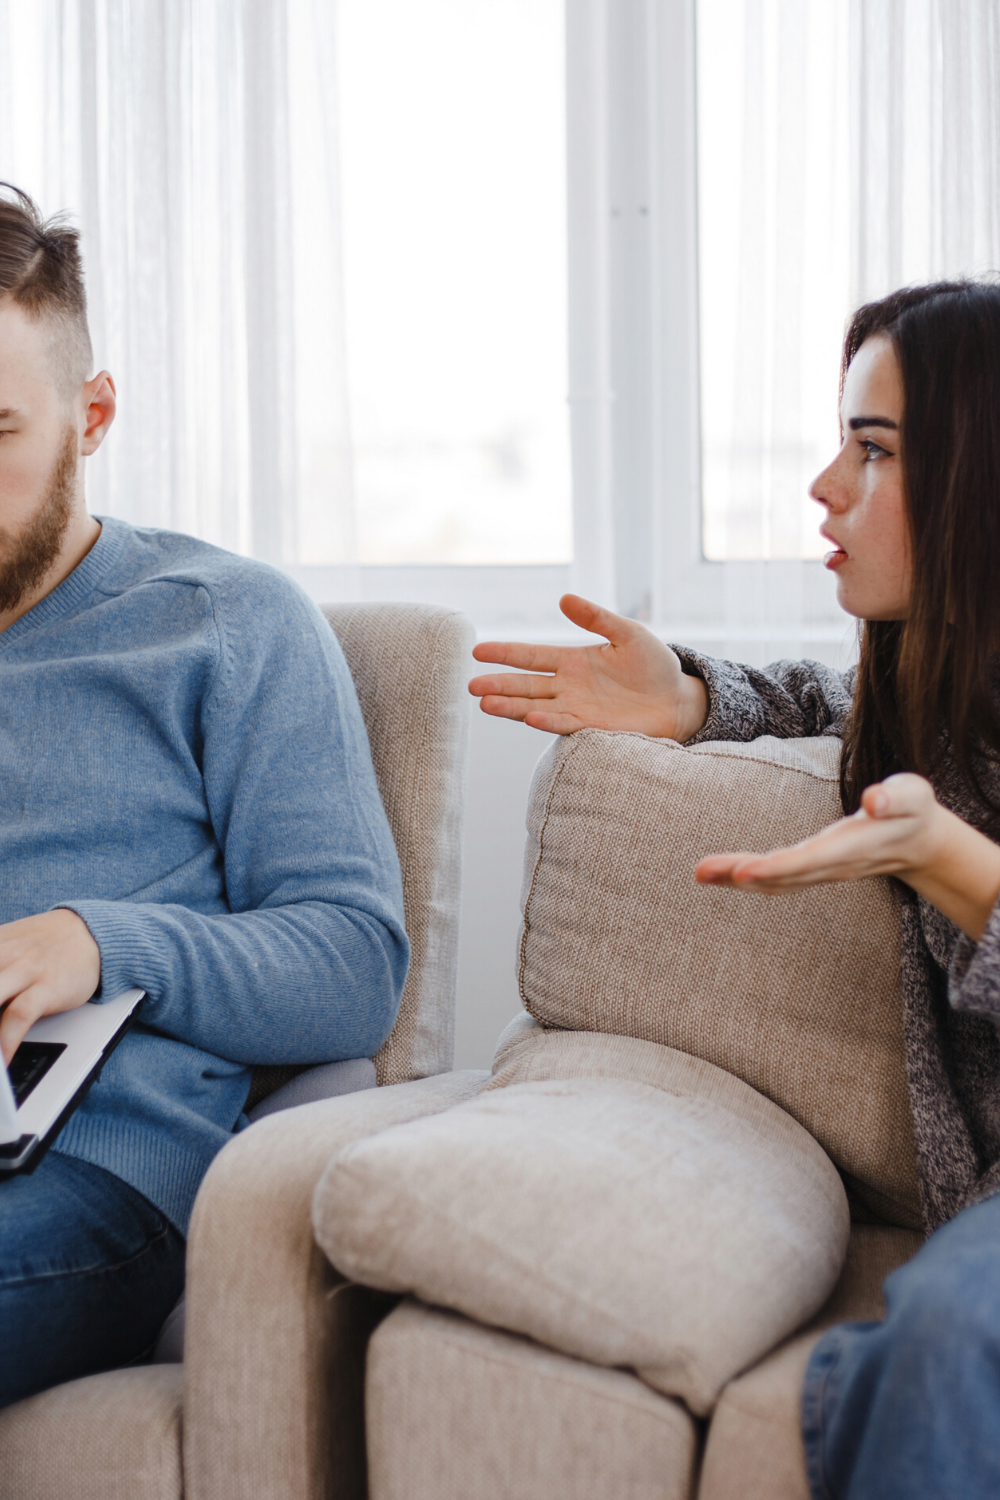 13 SIGNS YOUR PARTNER IS LYING TO YOU